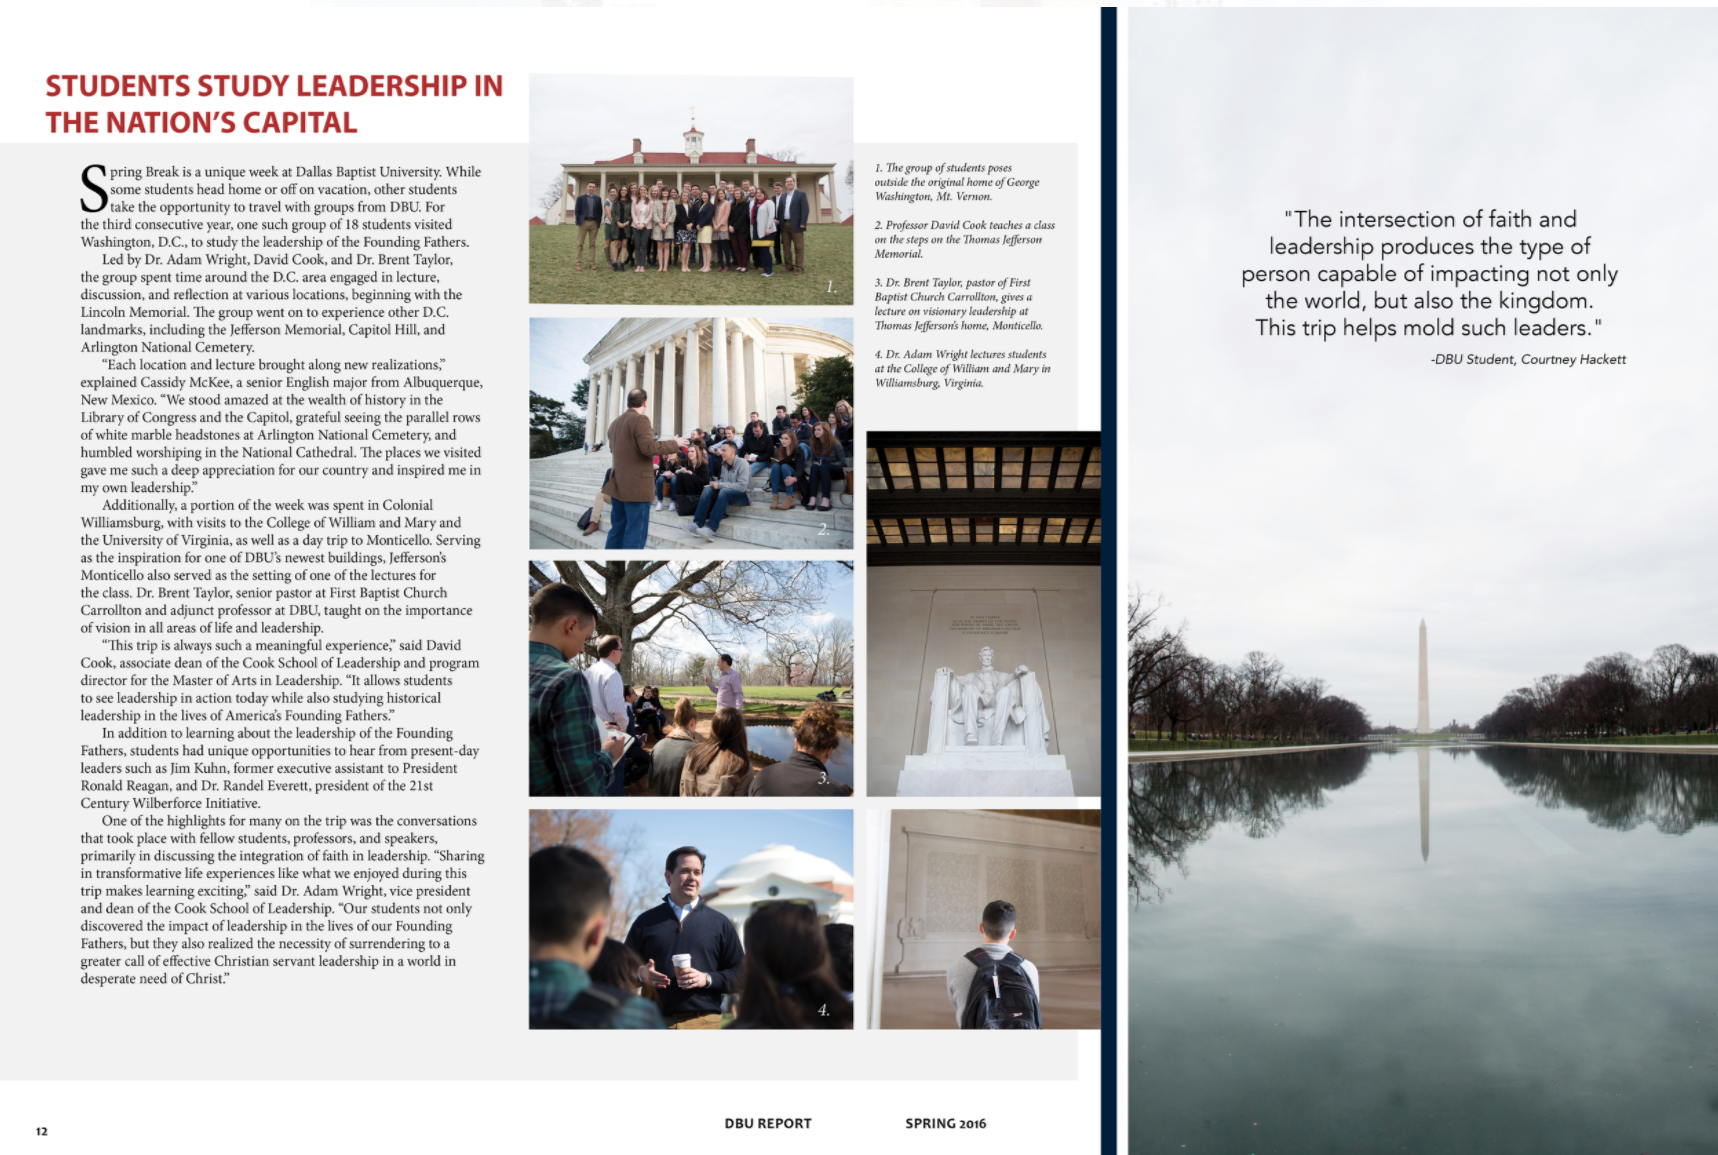 DBU ANNUAL REPORT - As the full time graphic designer for Dallas Baptist University in 2015-2016. It was my main responsibility to design, photograph and produce a quarterly annual report that was printed and sent to DBU students, alumni, trustees, donors and families all over the globe. The report meshed my love for photography and layout design. I saw each report through a long process of content creating, design, collaboration, editing, and a series of proofing within our university departments, until press checks and print production.